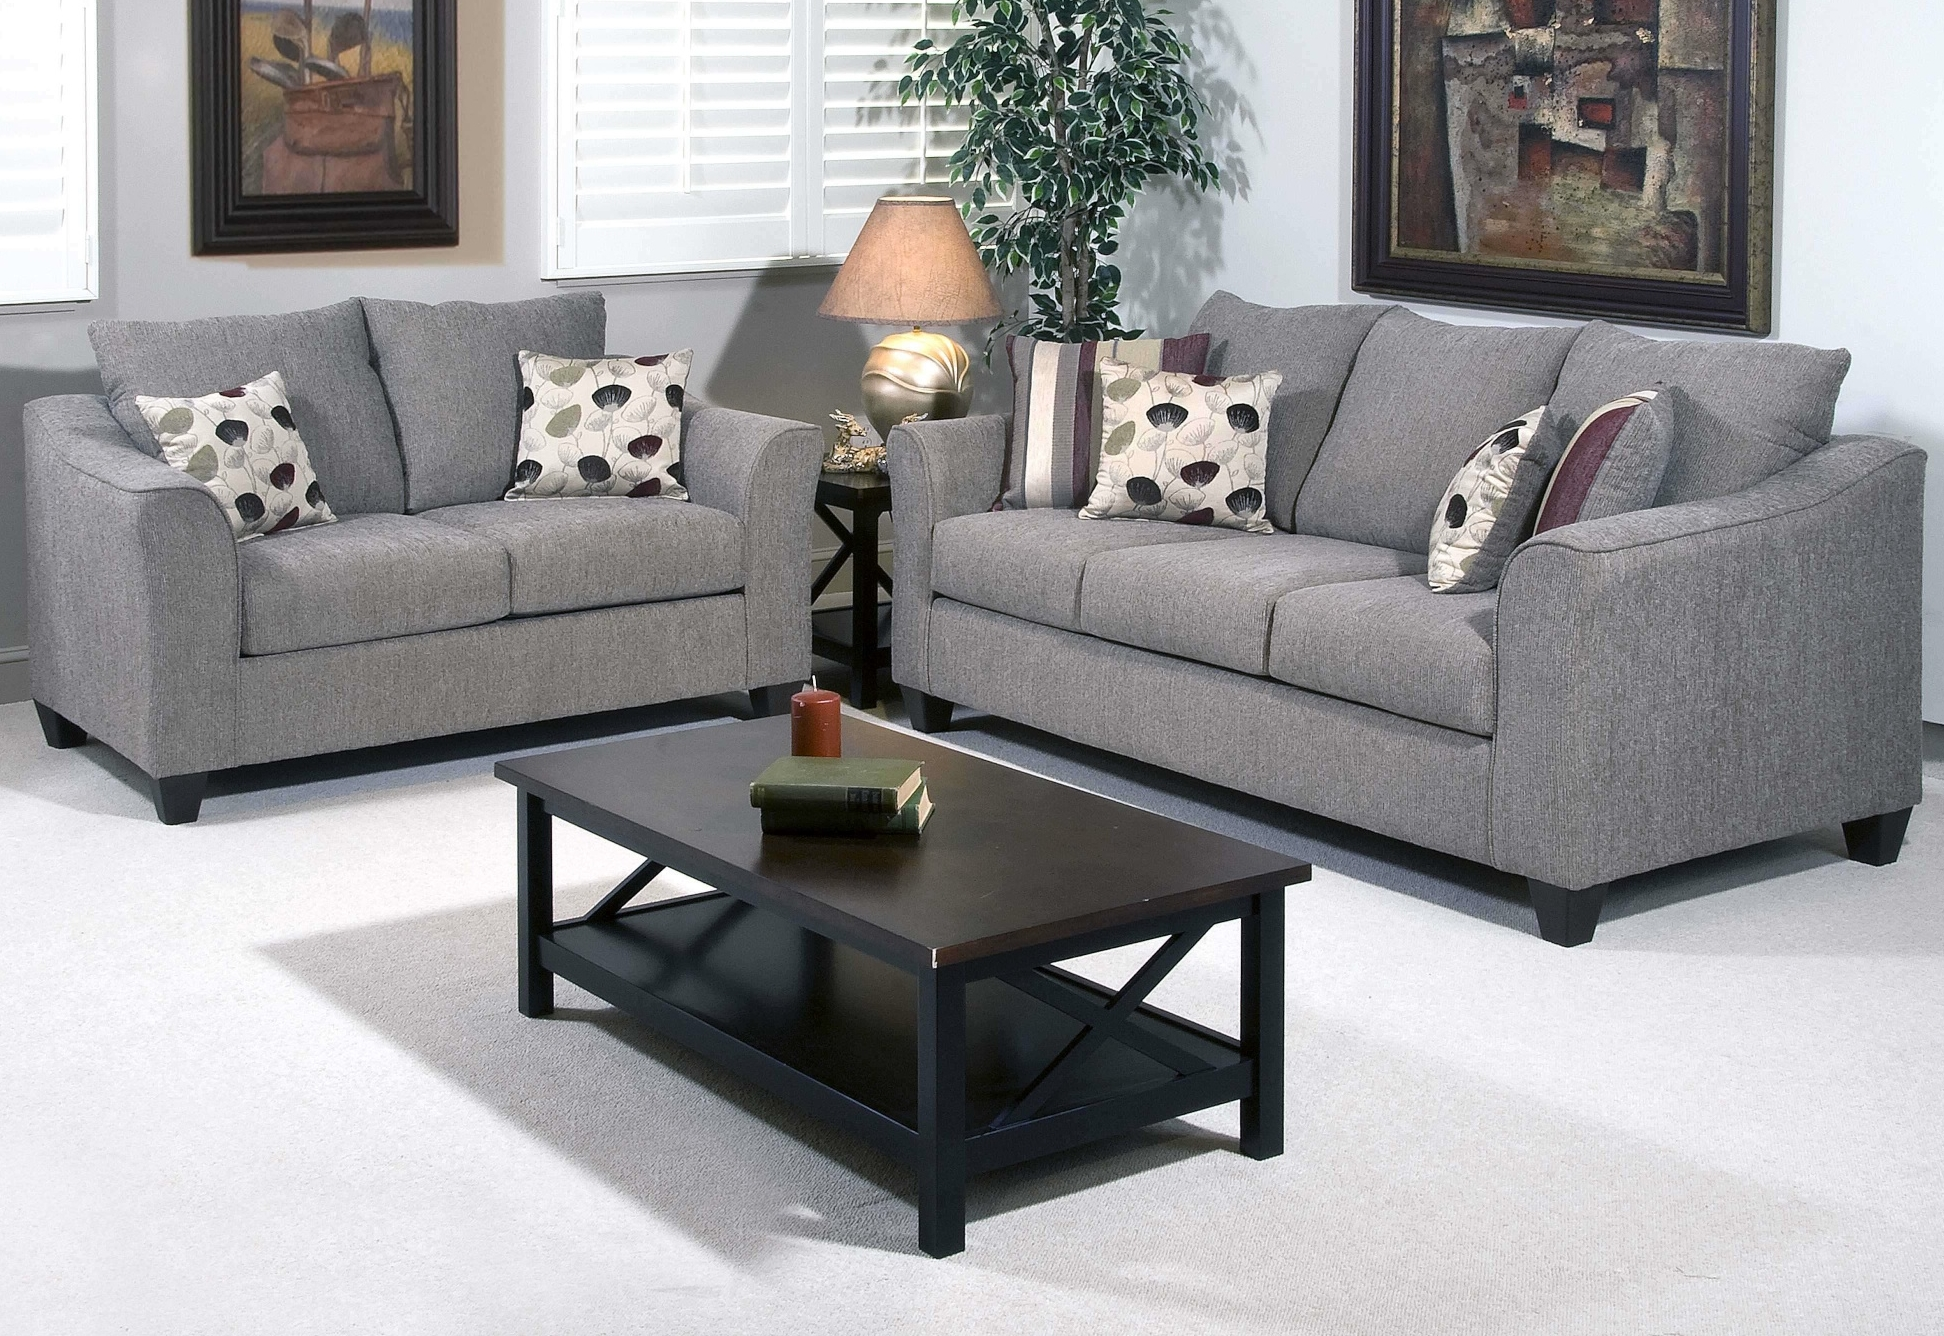 LIVING ROOM FURNITURE - Fred\'s Furniture Co.